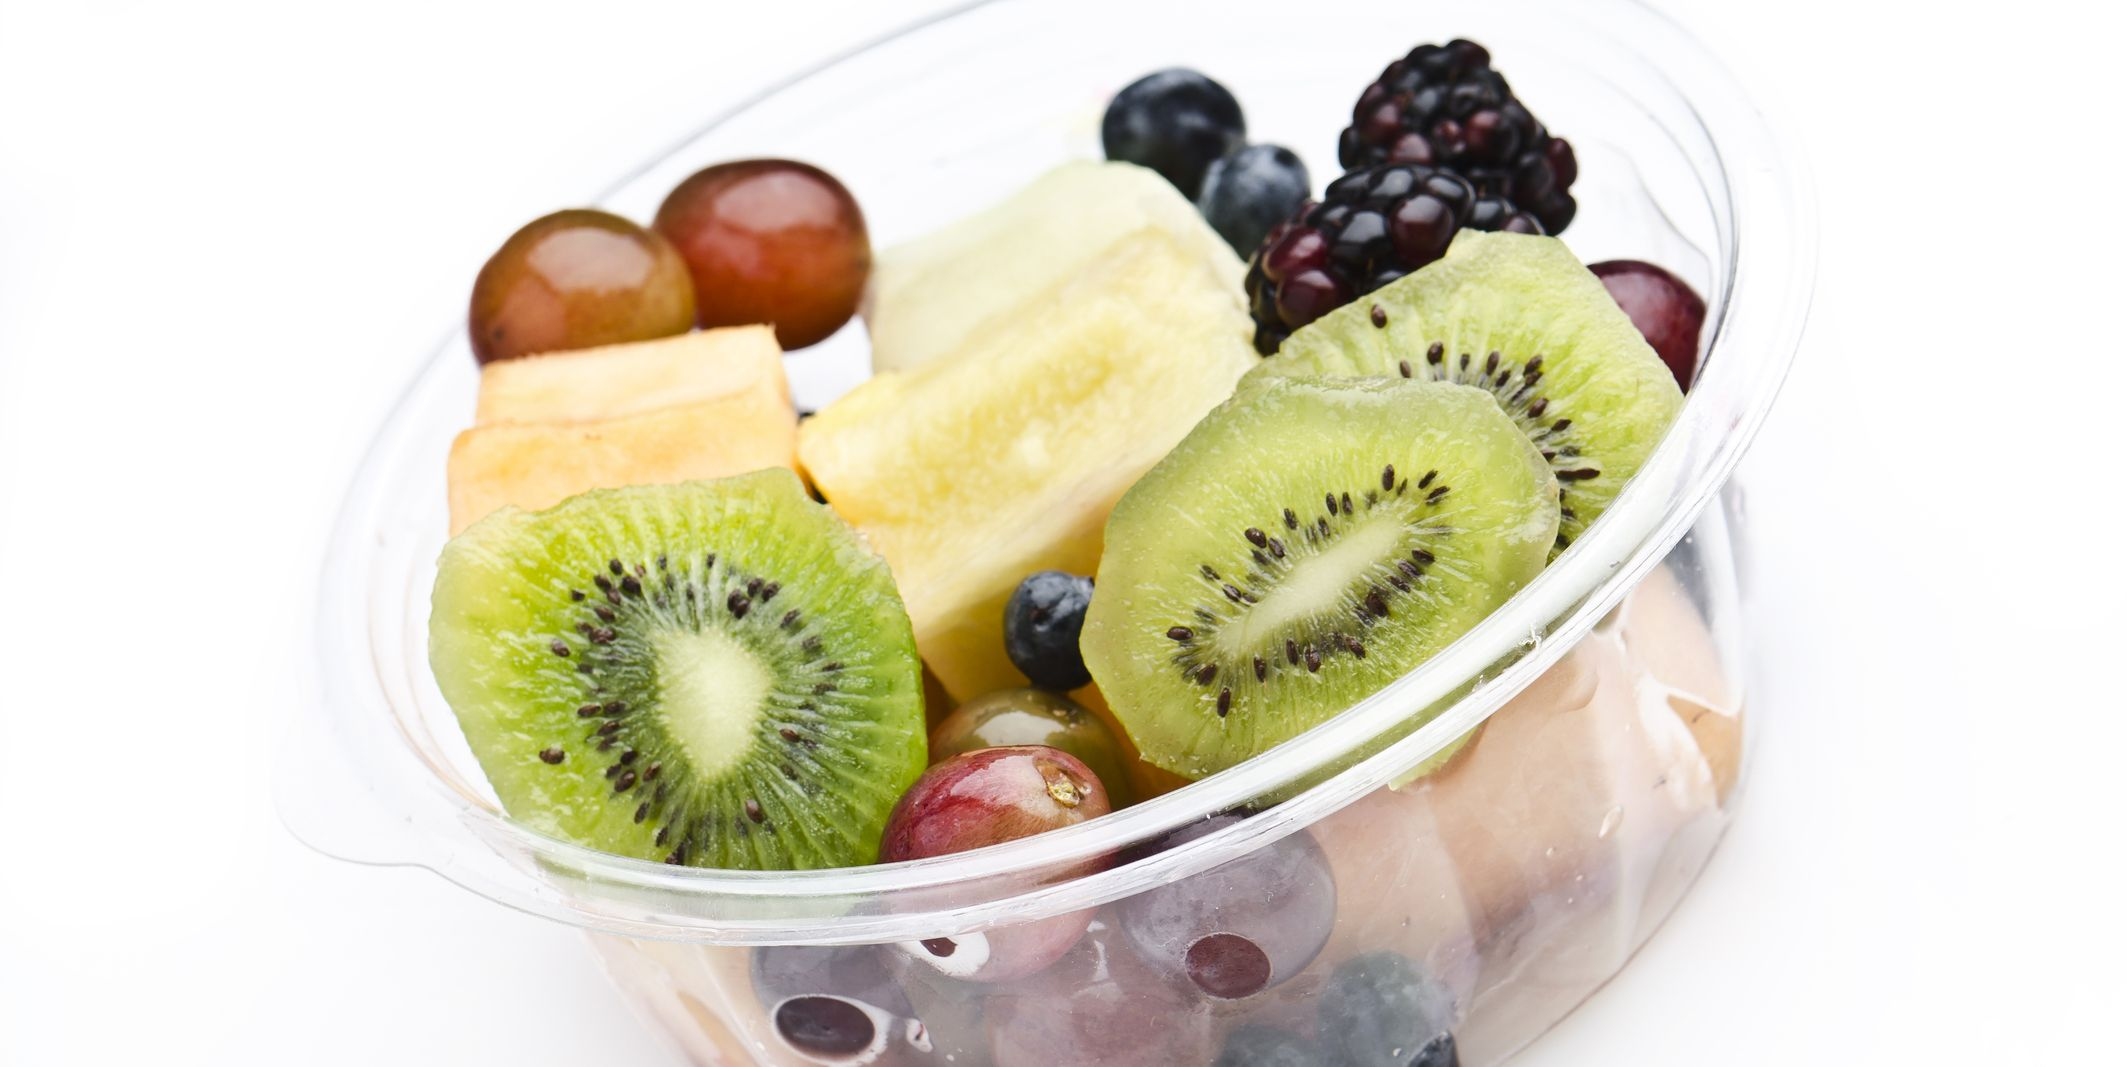 Plastic Tray of assorted fruits on white background